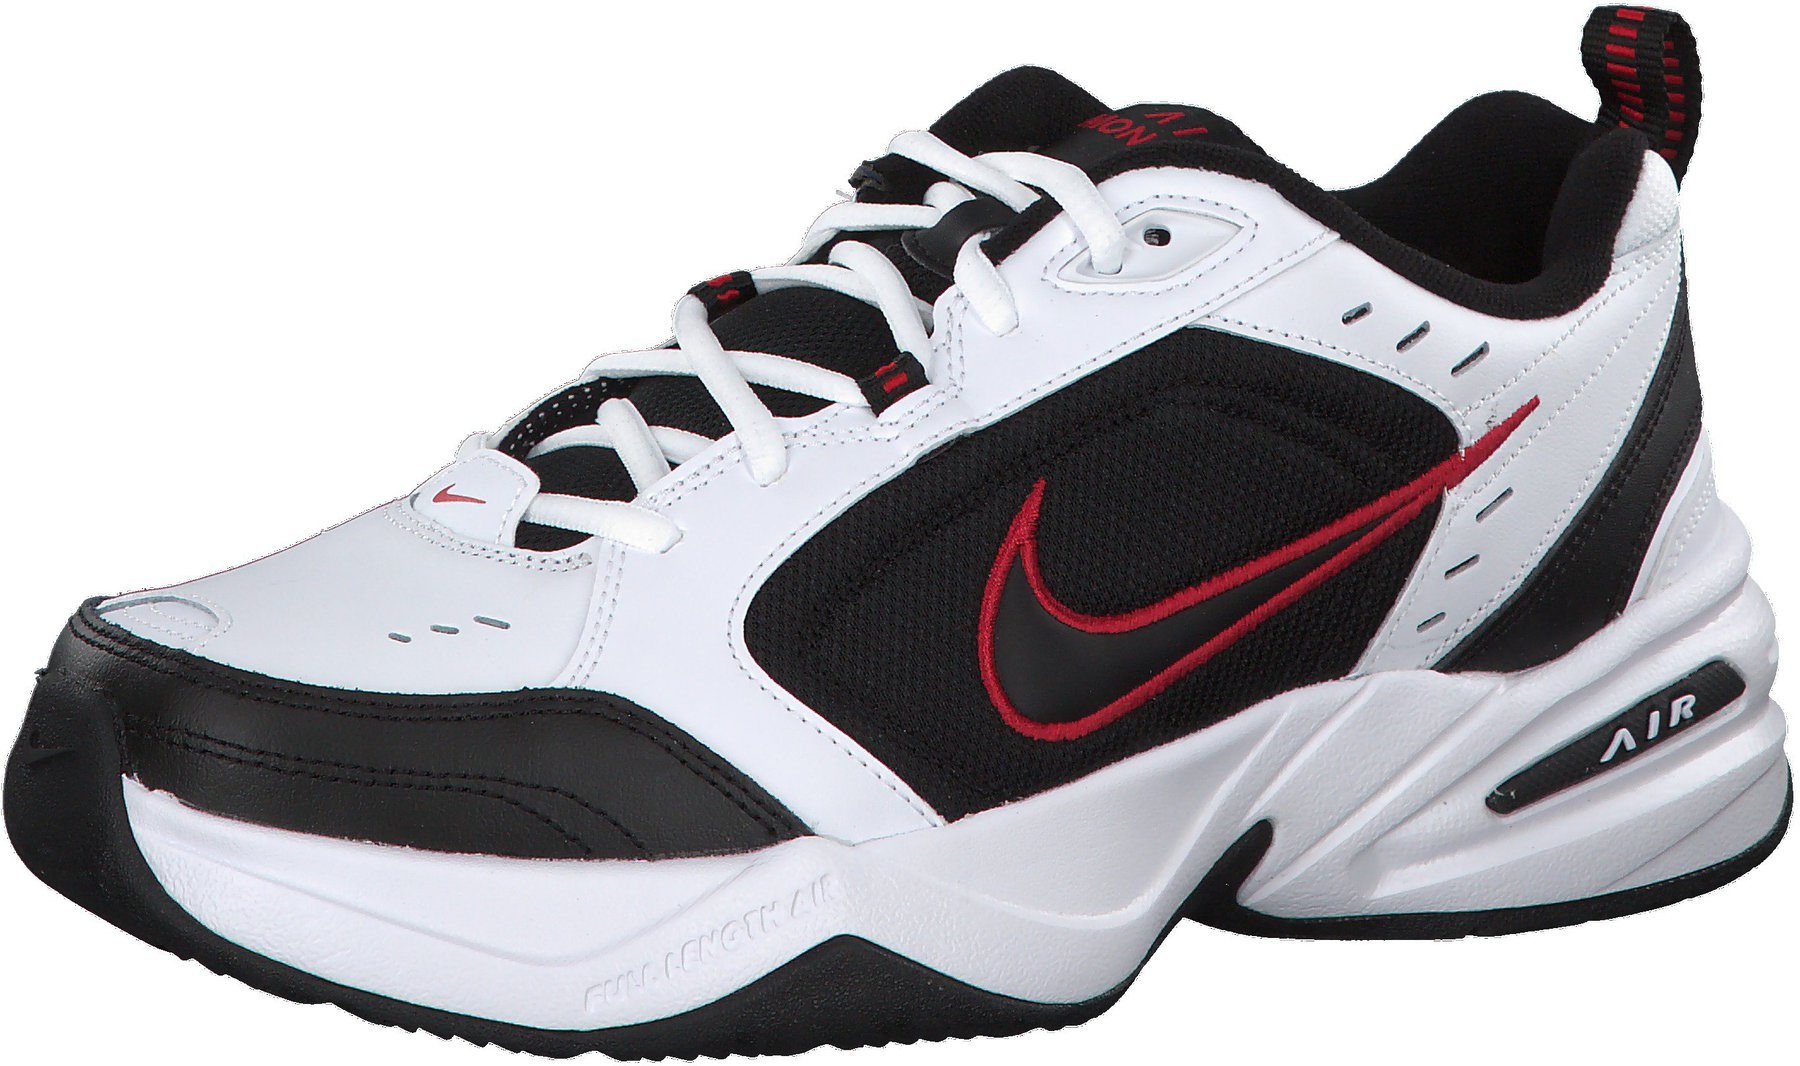 Nike Air Monarch IV whiteblackvarsity red